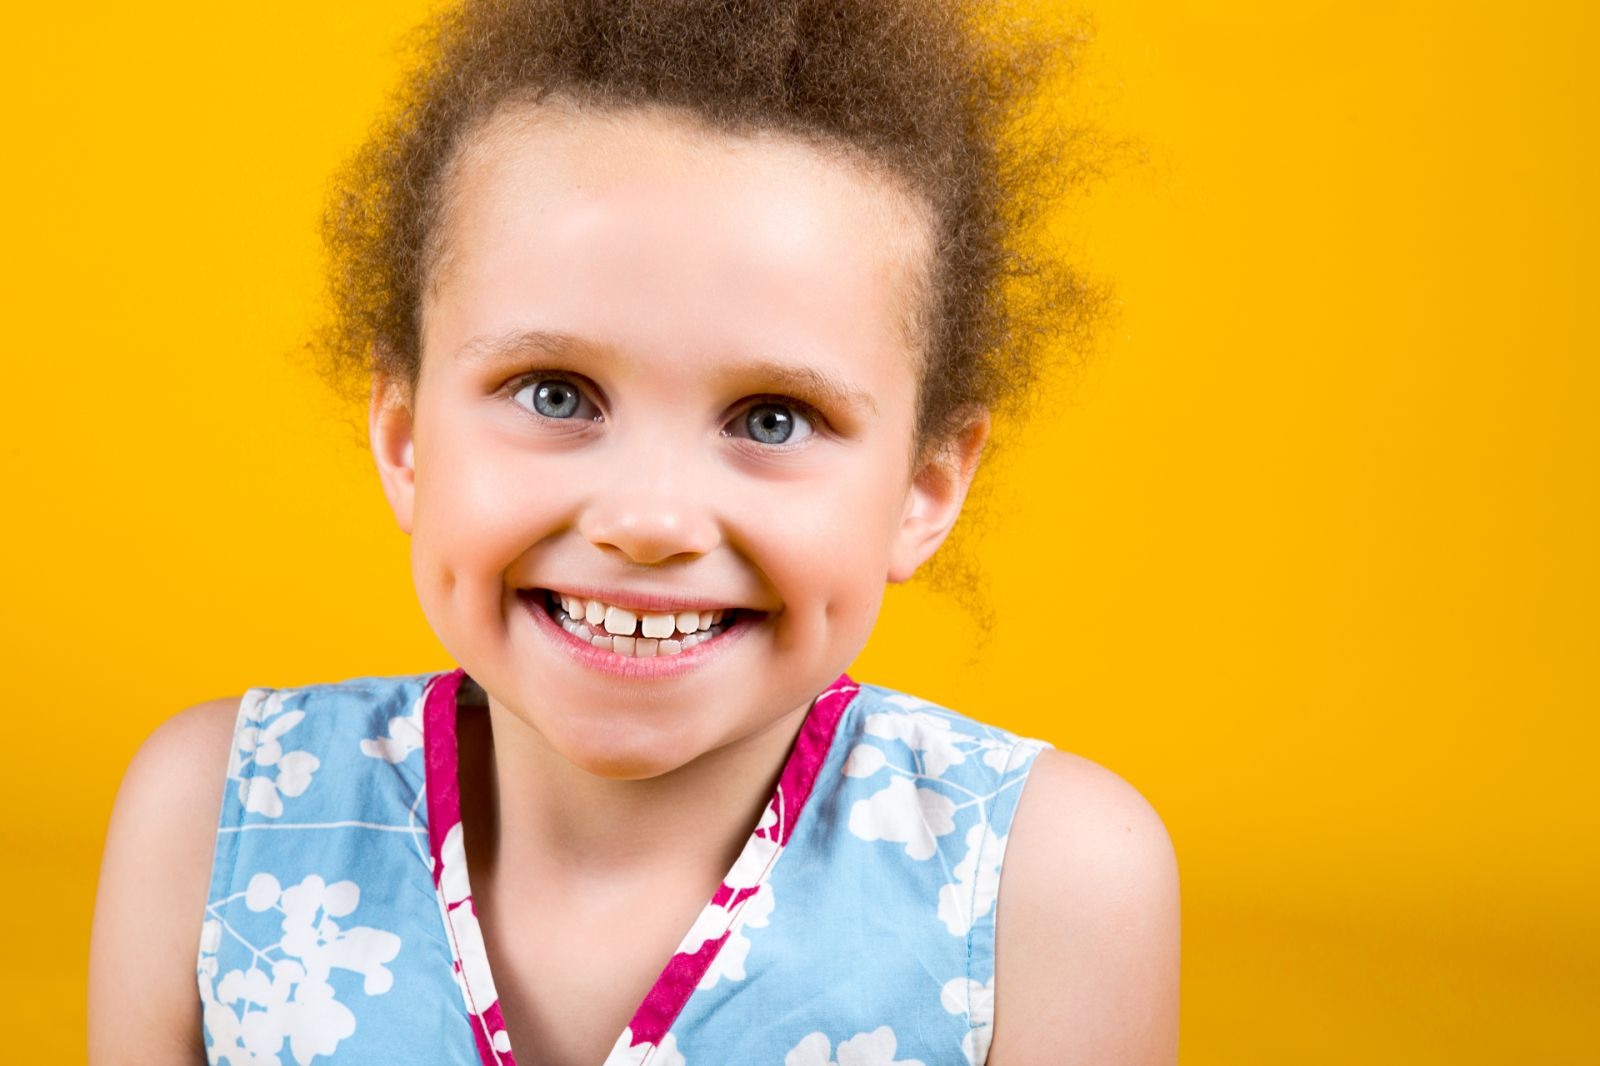 Girl in blue dress on bright yellow backdrop